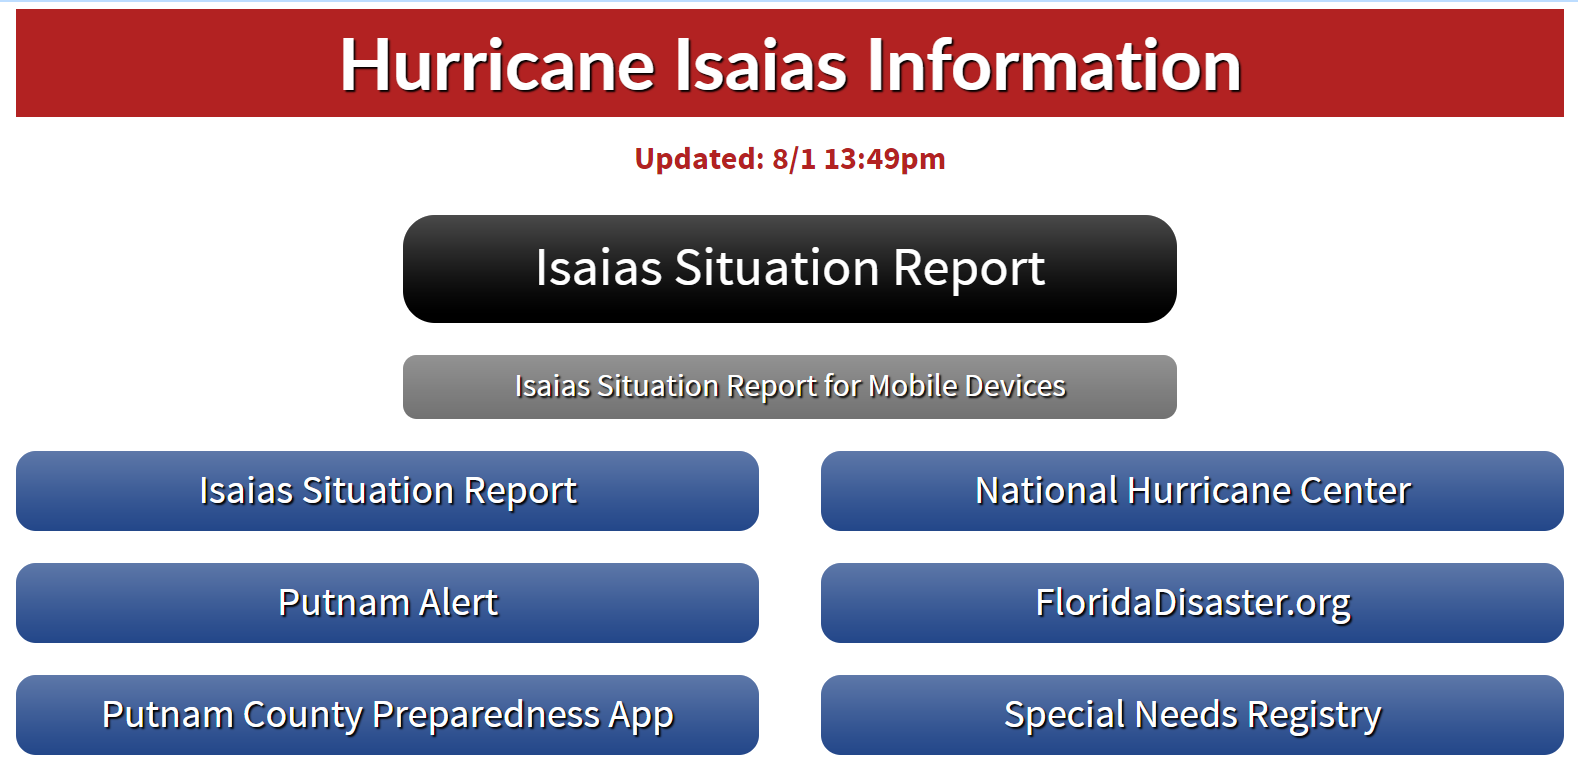 Putnam County Hurricane Isaias Latest Information Graphic